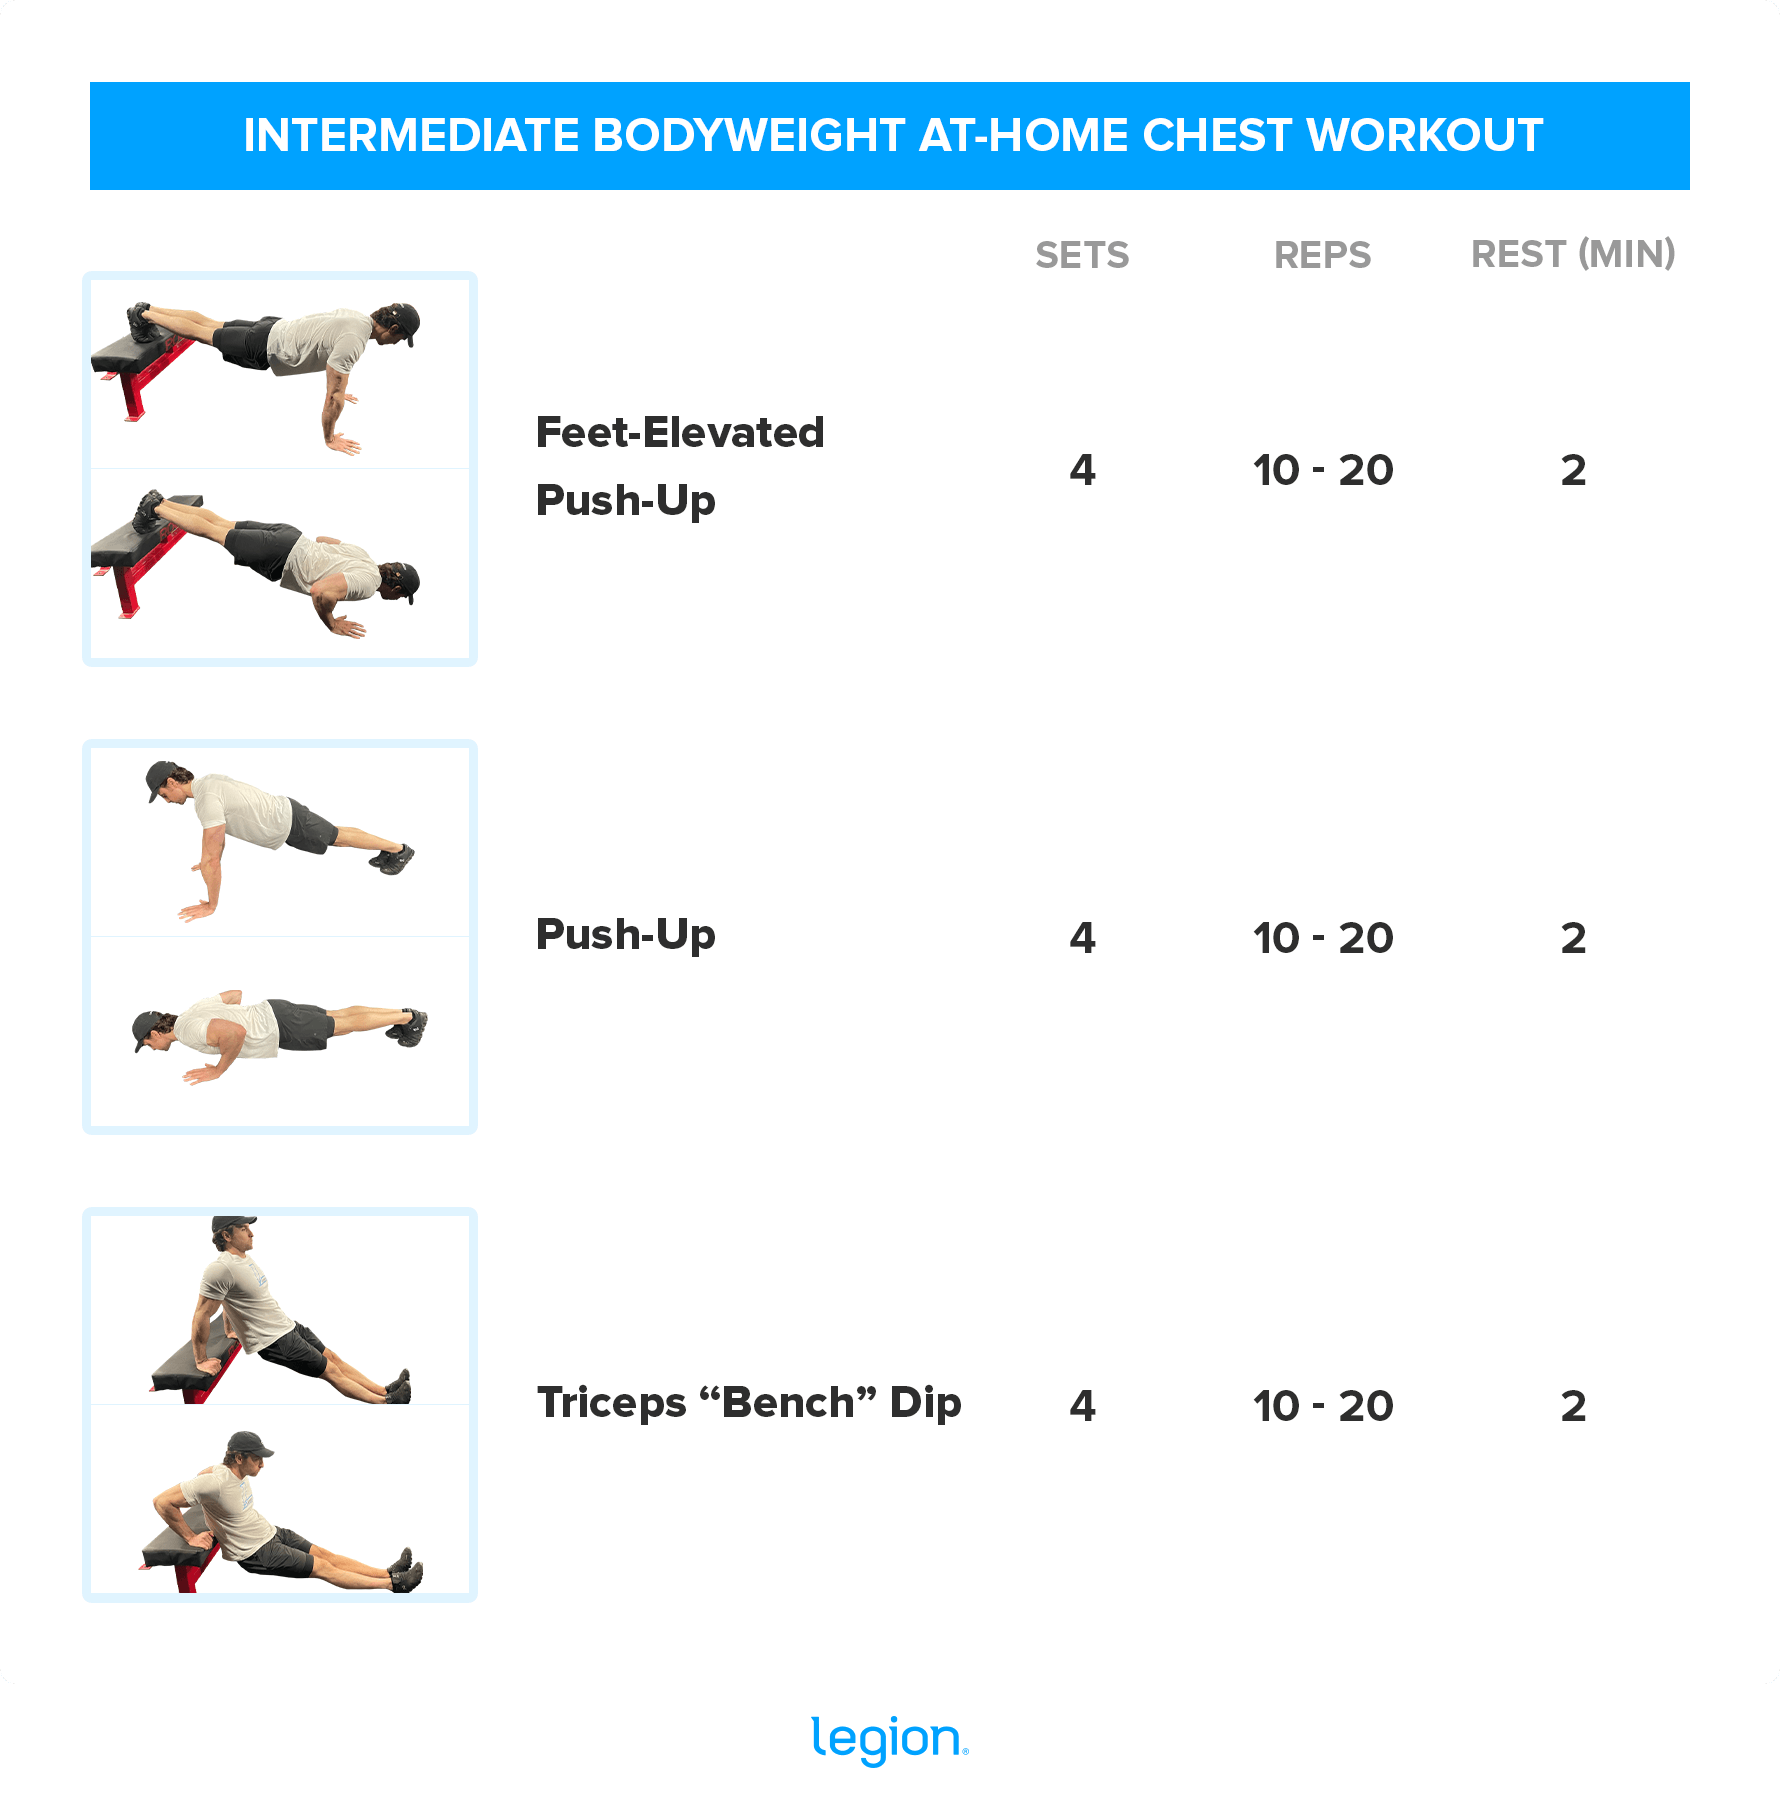 INTERMEDIATE BODYWEIGHT AT-HOME CHEST WORKOUT